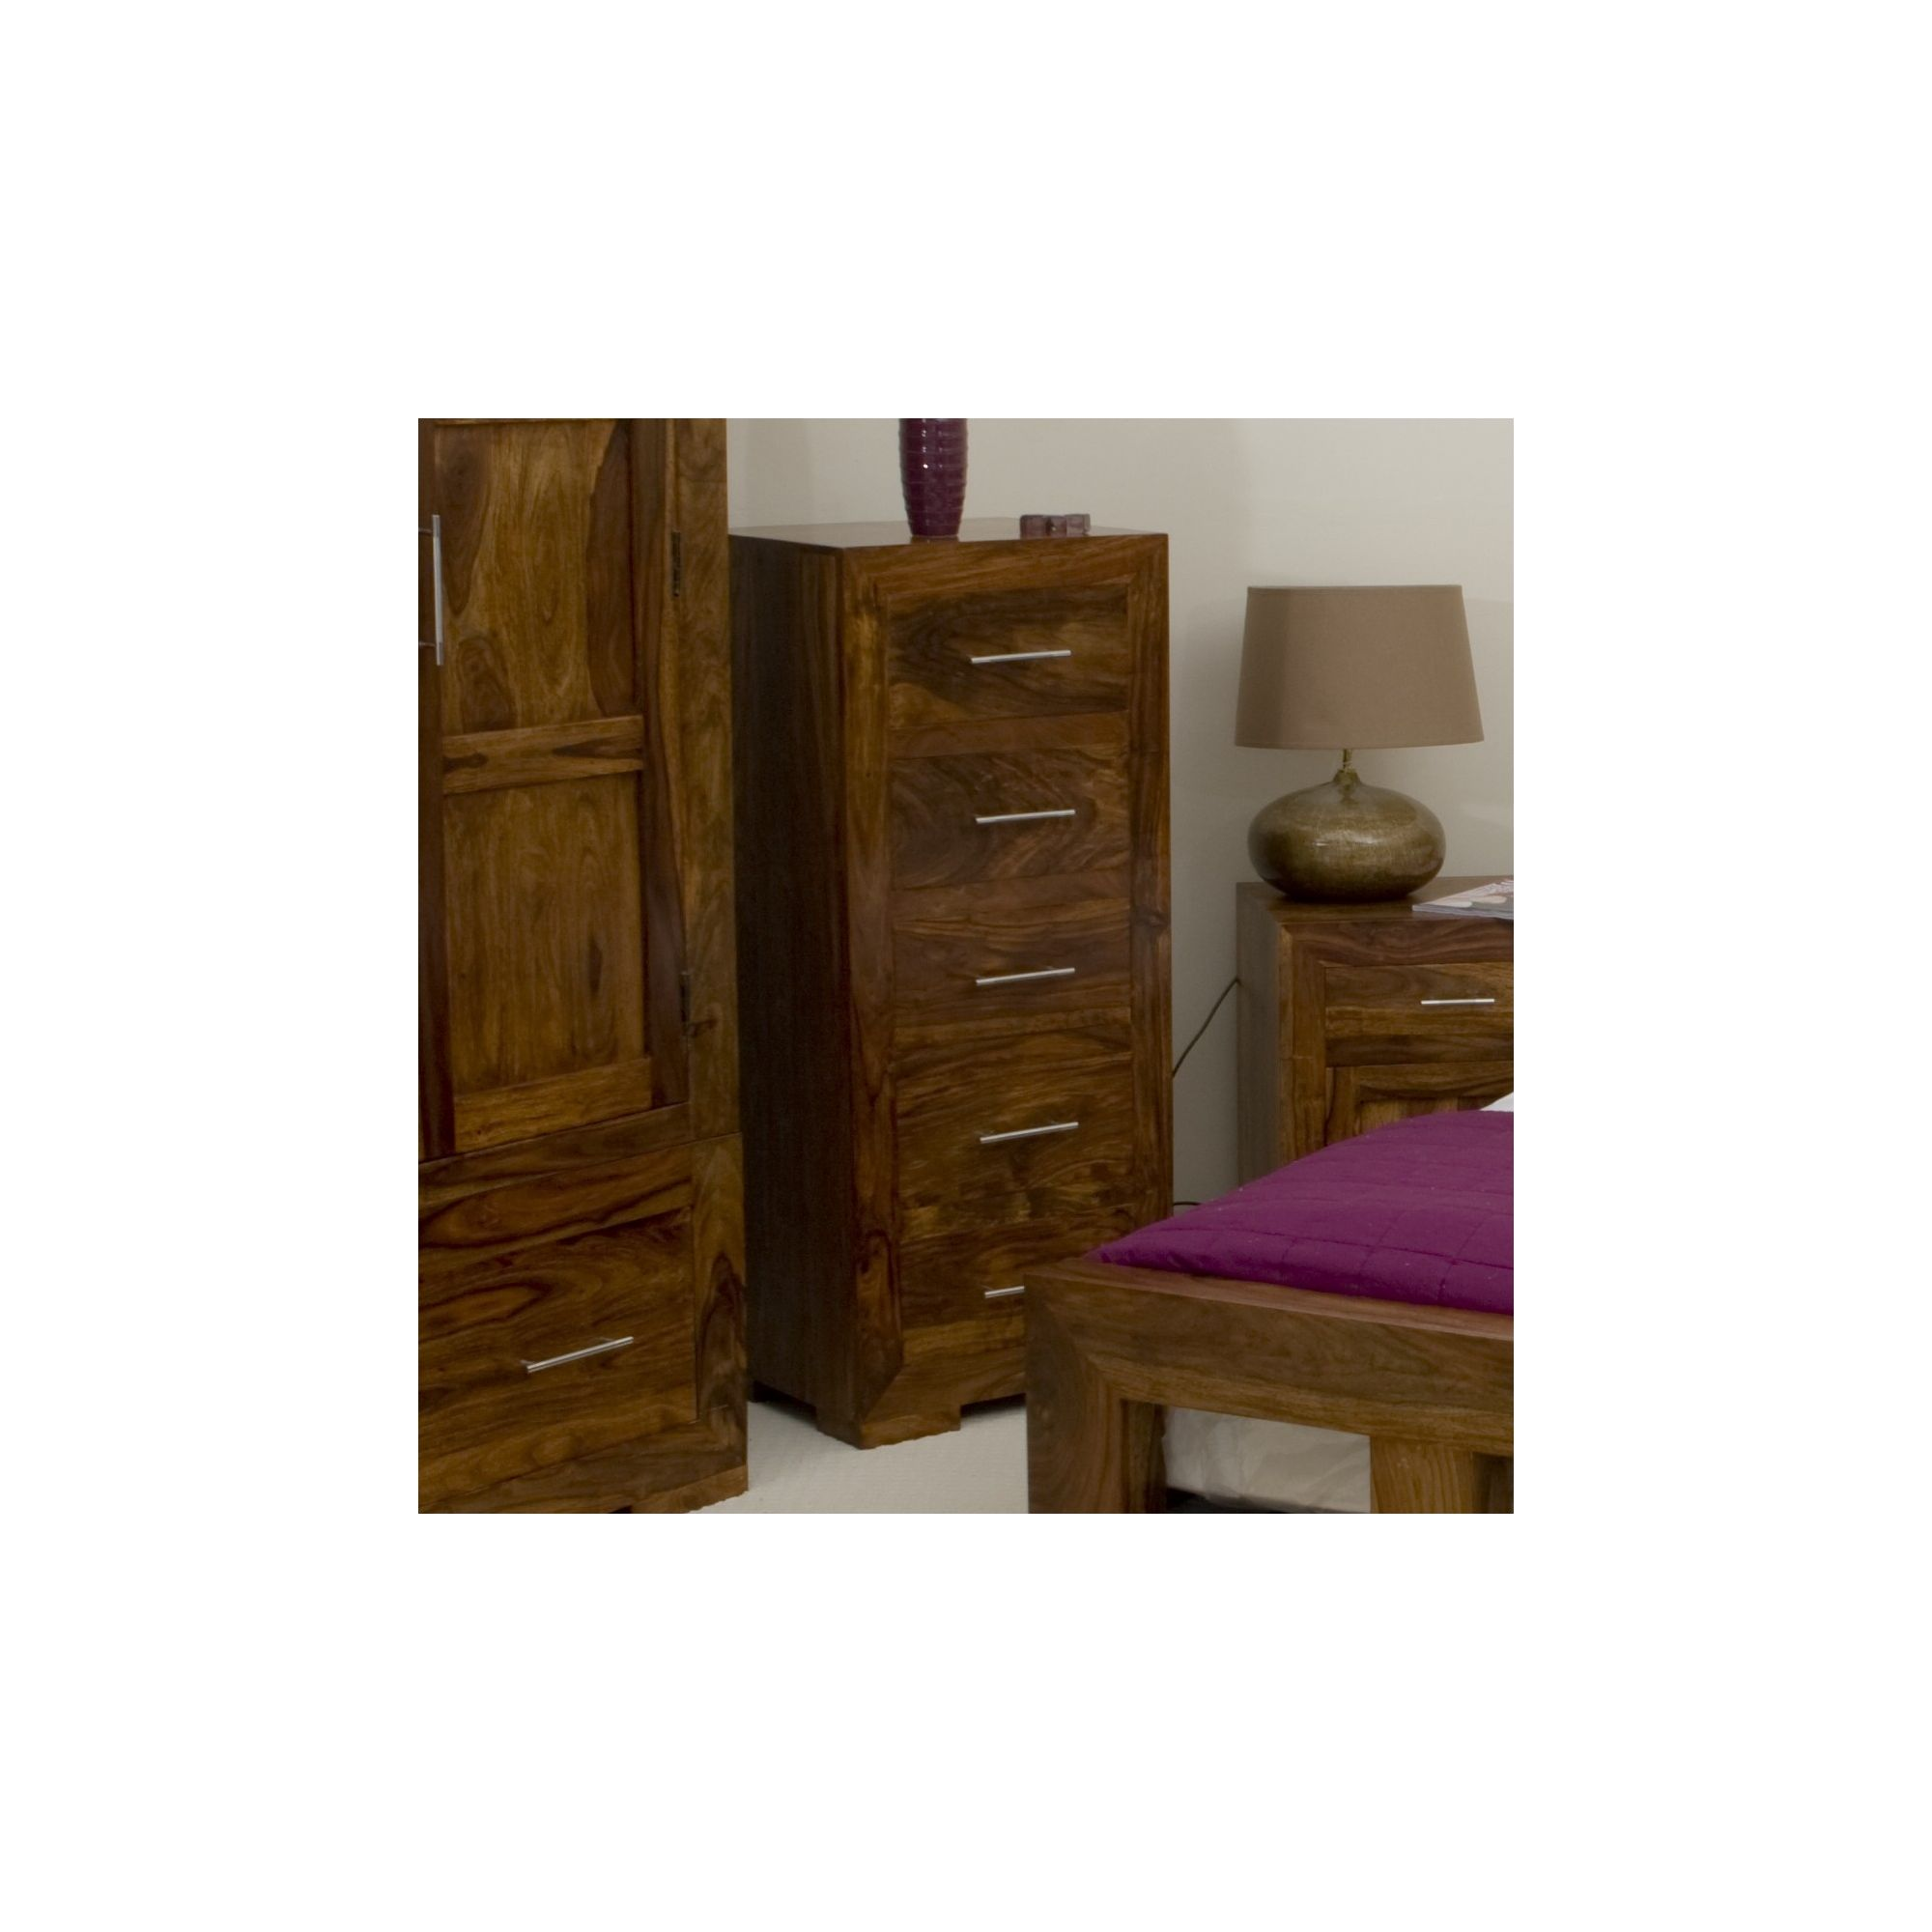 Elements Cubex Bedroom Five Drawer Tall Chest in Warm Lacquer at Tesco Direct